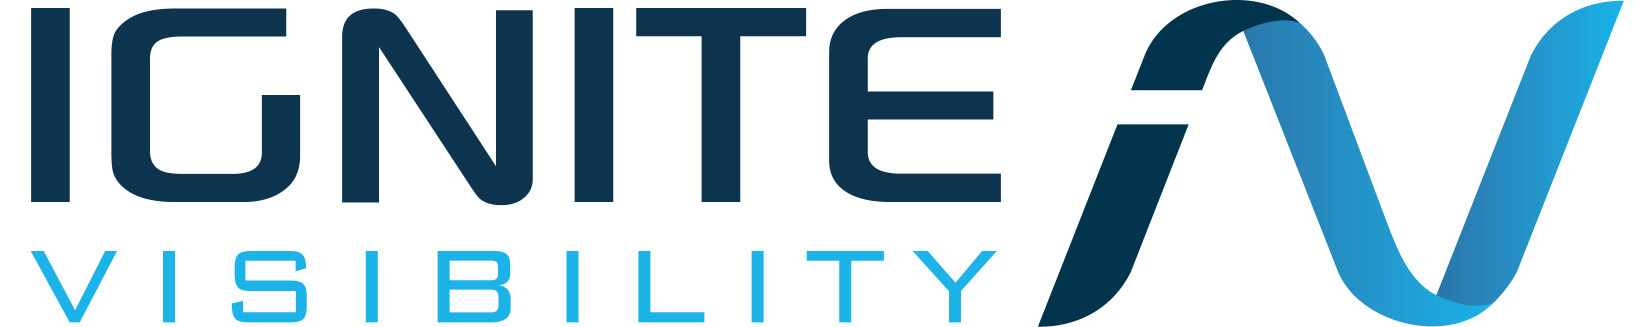 Best Global Online Marketing Company Logo: Ignite Visibility